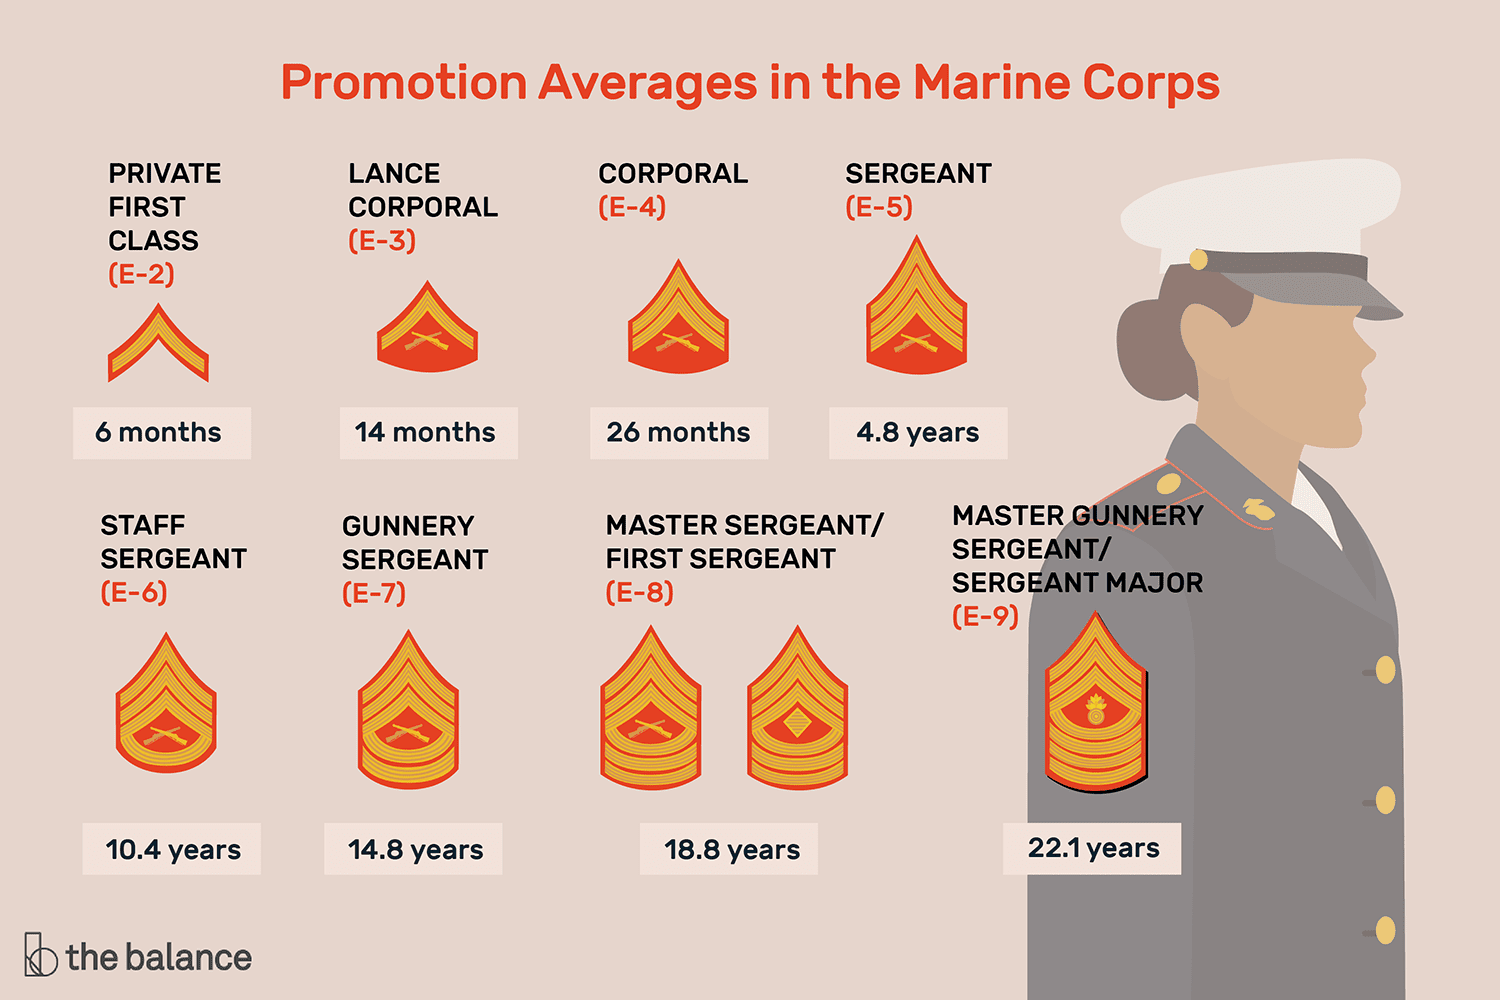 Httpsghiroph Comnew First Class Rank Requirements: Marine Corps Enlisted Promotion System Explained